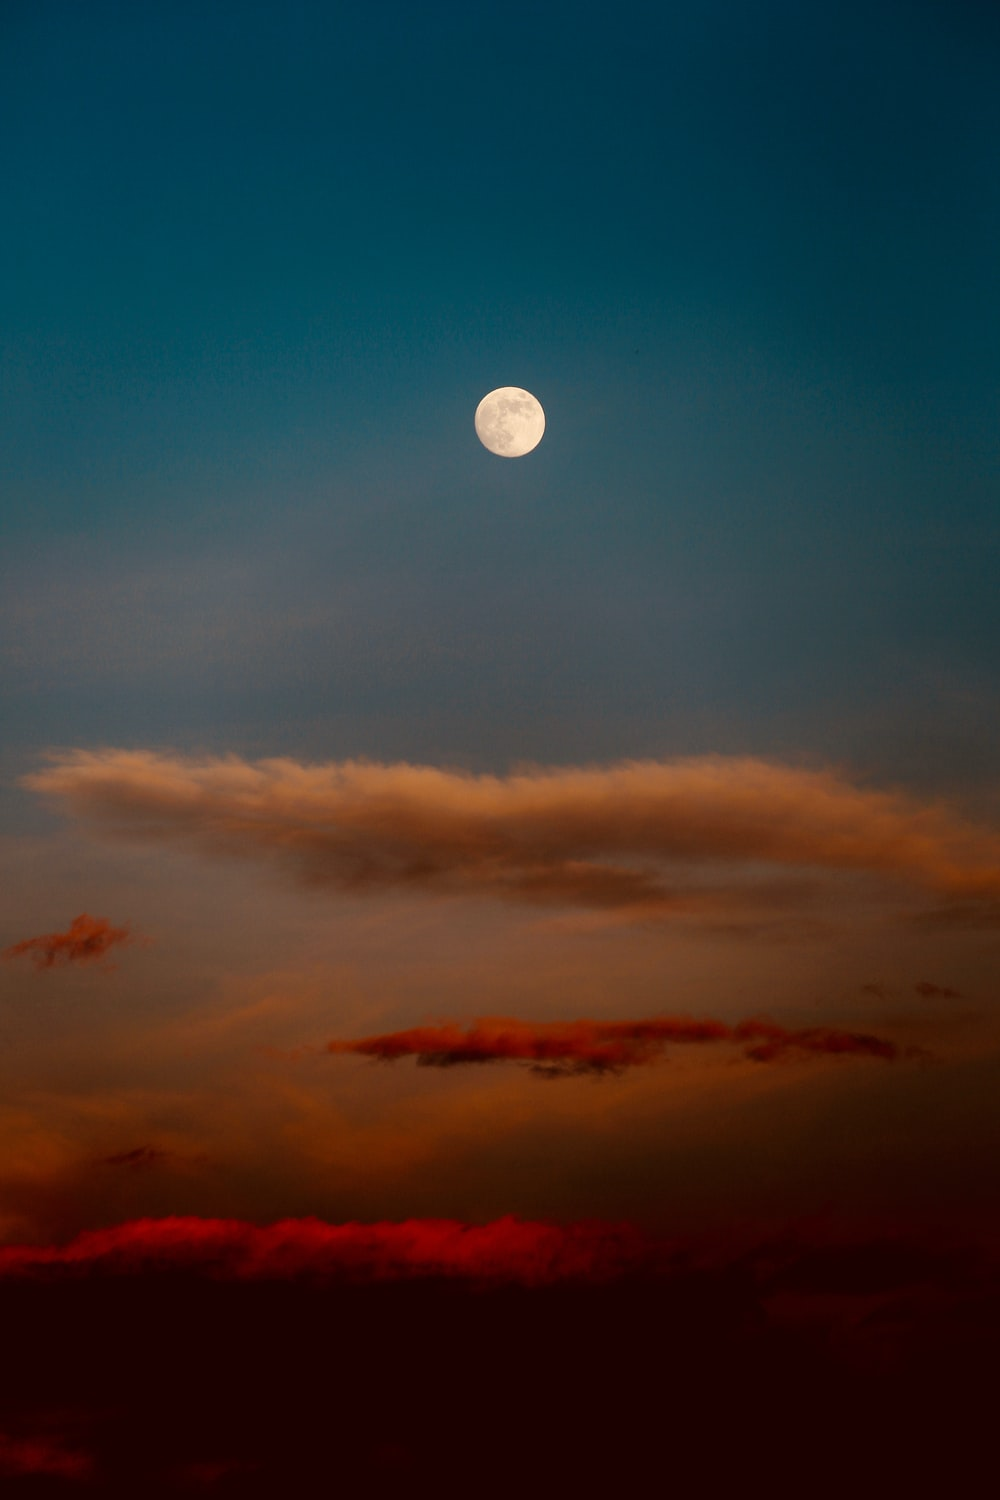 white, red, and blue sky with clouds and moon painting